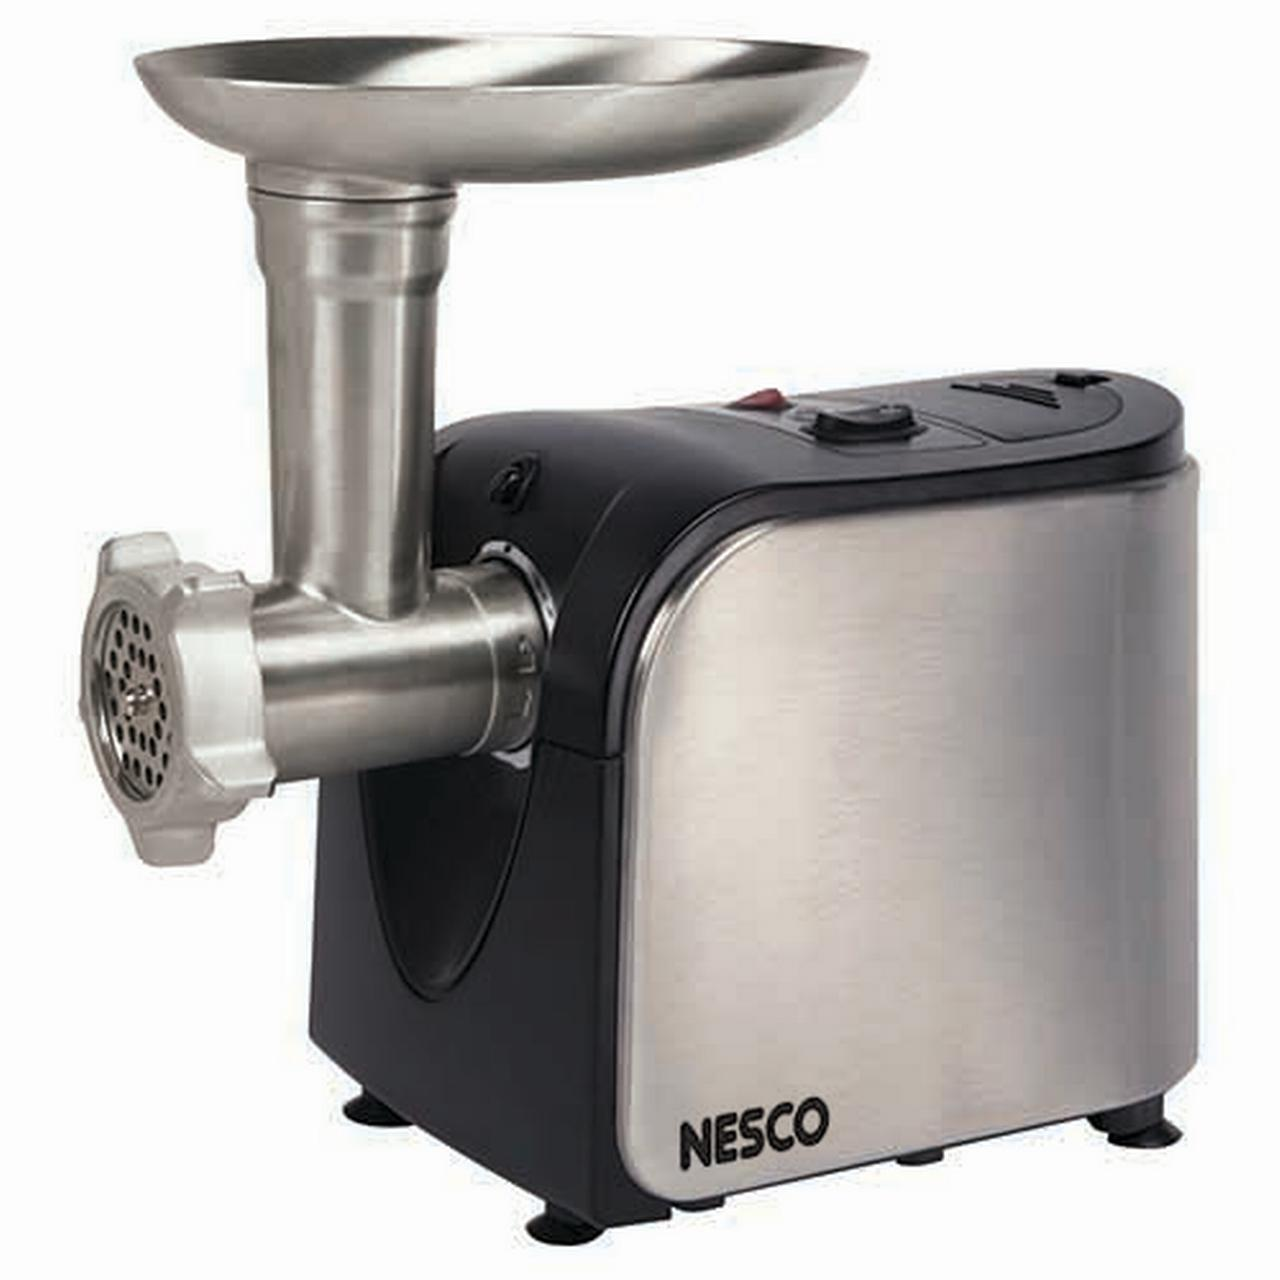 Nesco 500 Watt Stainless Steel Food Grinder (FG-180)